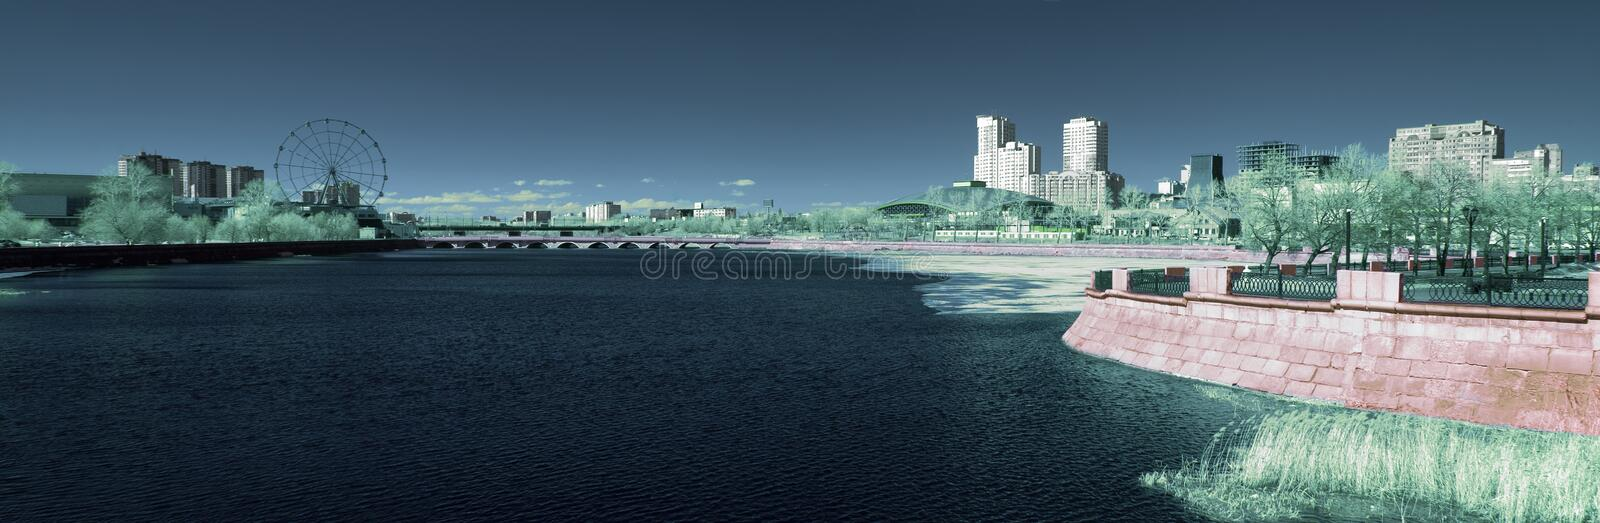 Panorama of the Miass River embankment. Infrared photo royalty free stock photos